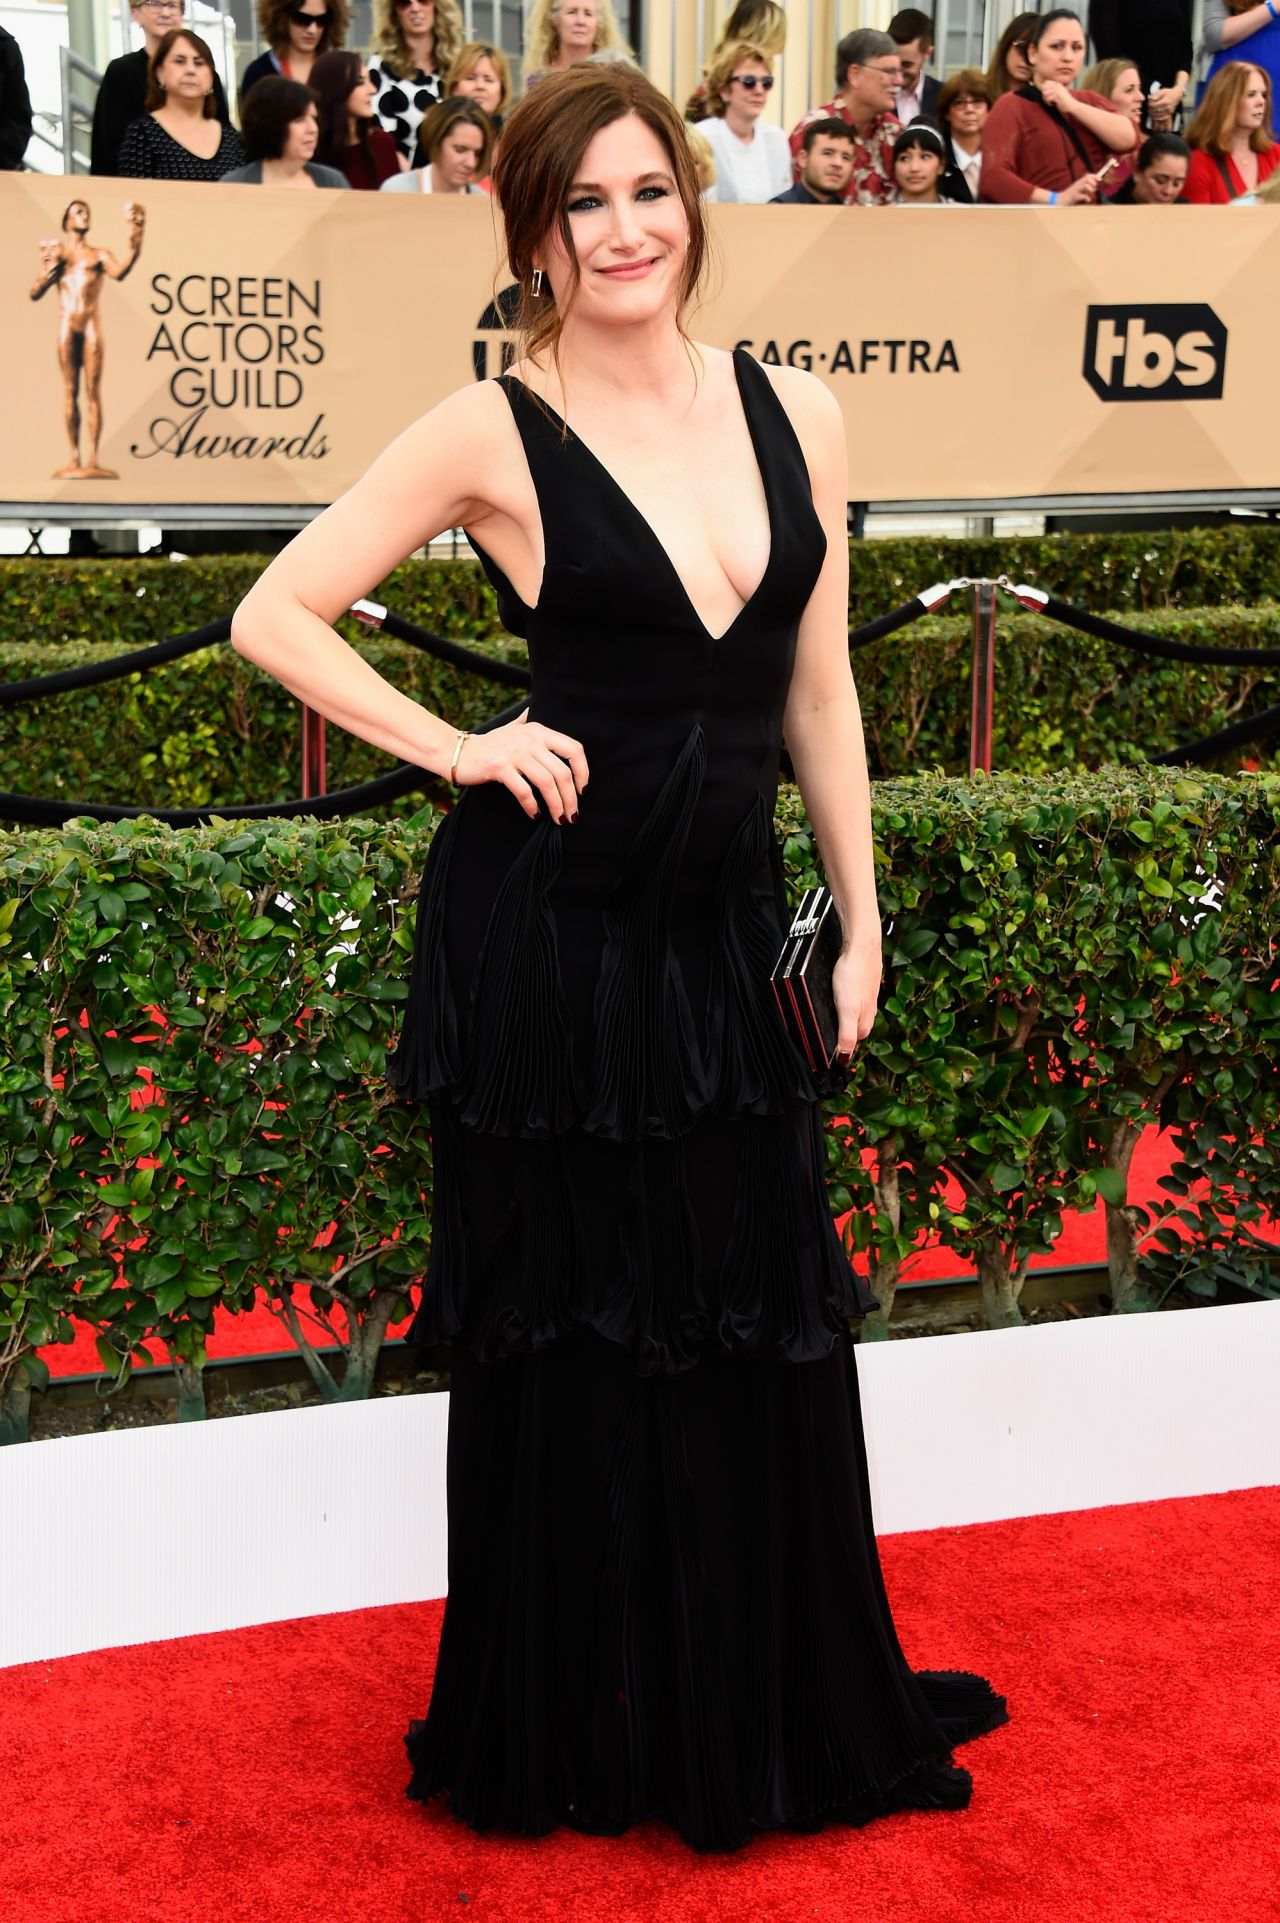 kathryn-hahn-sag-awards-2016-at-shrine-auditorium-in-los-angeles-1